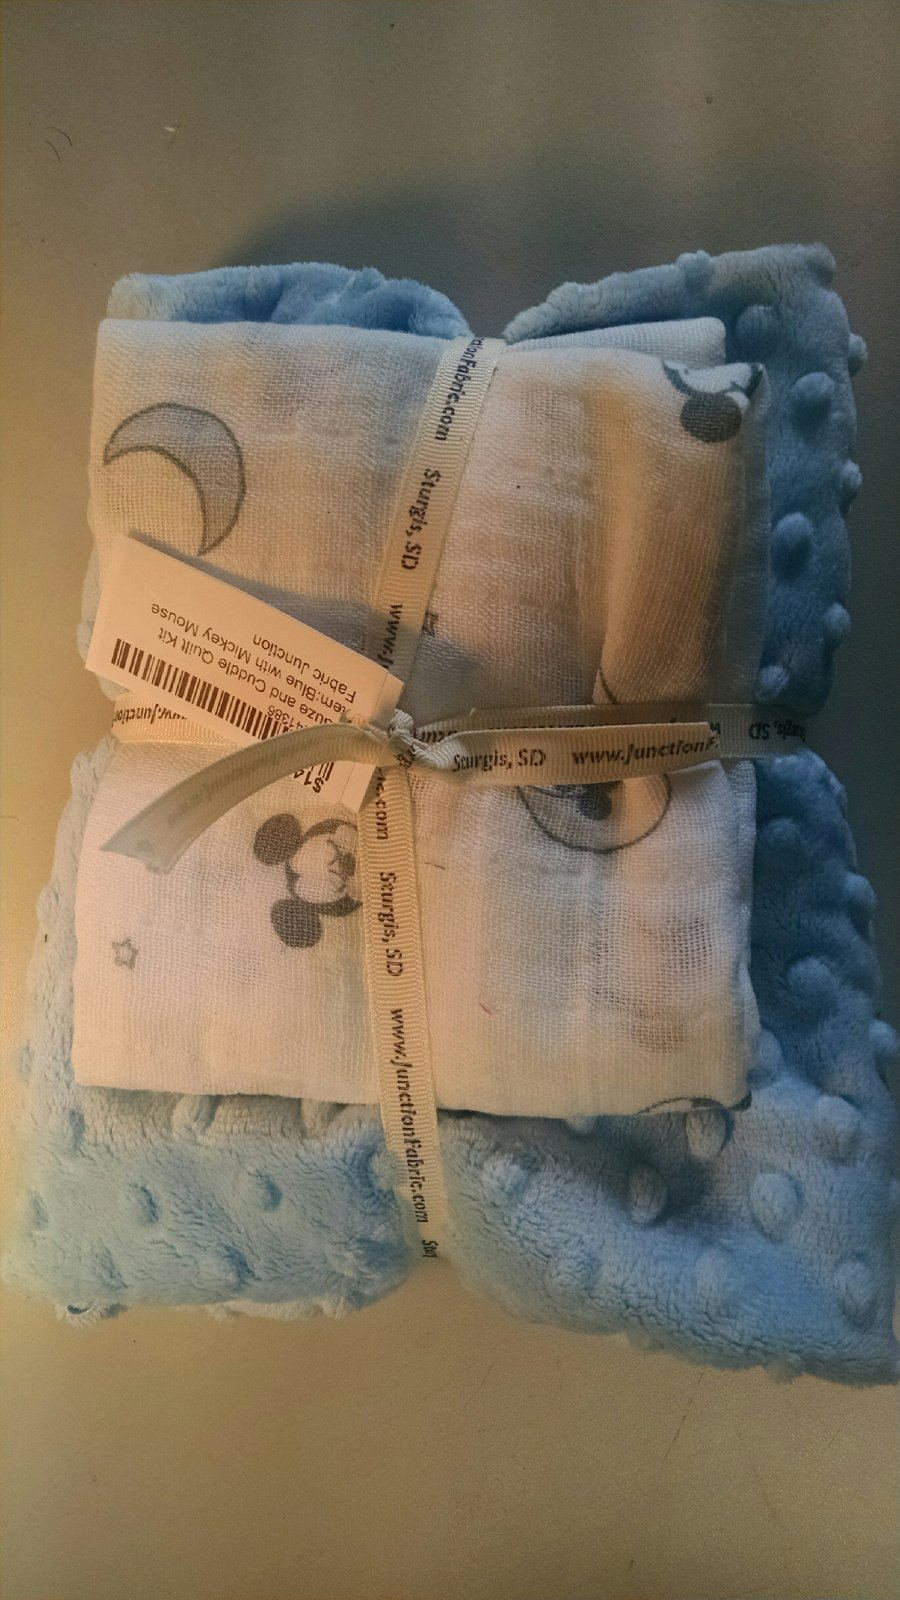 Cuddle Me Quilt Kit